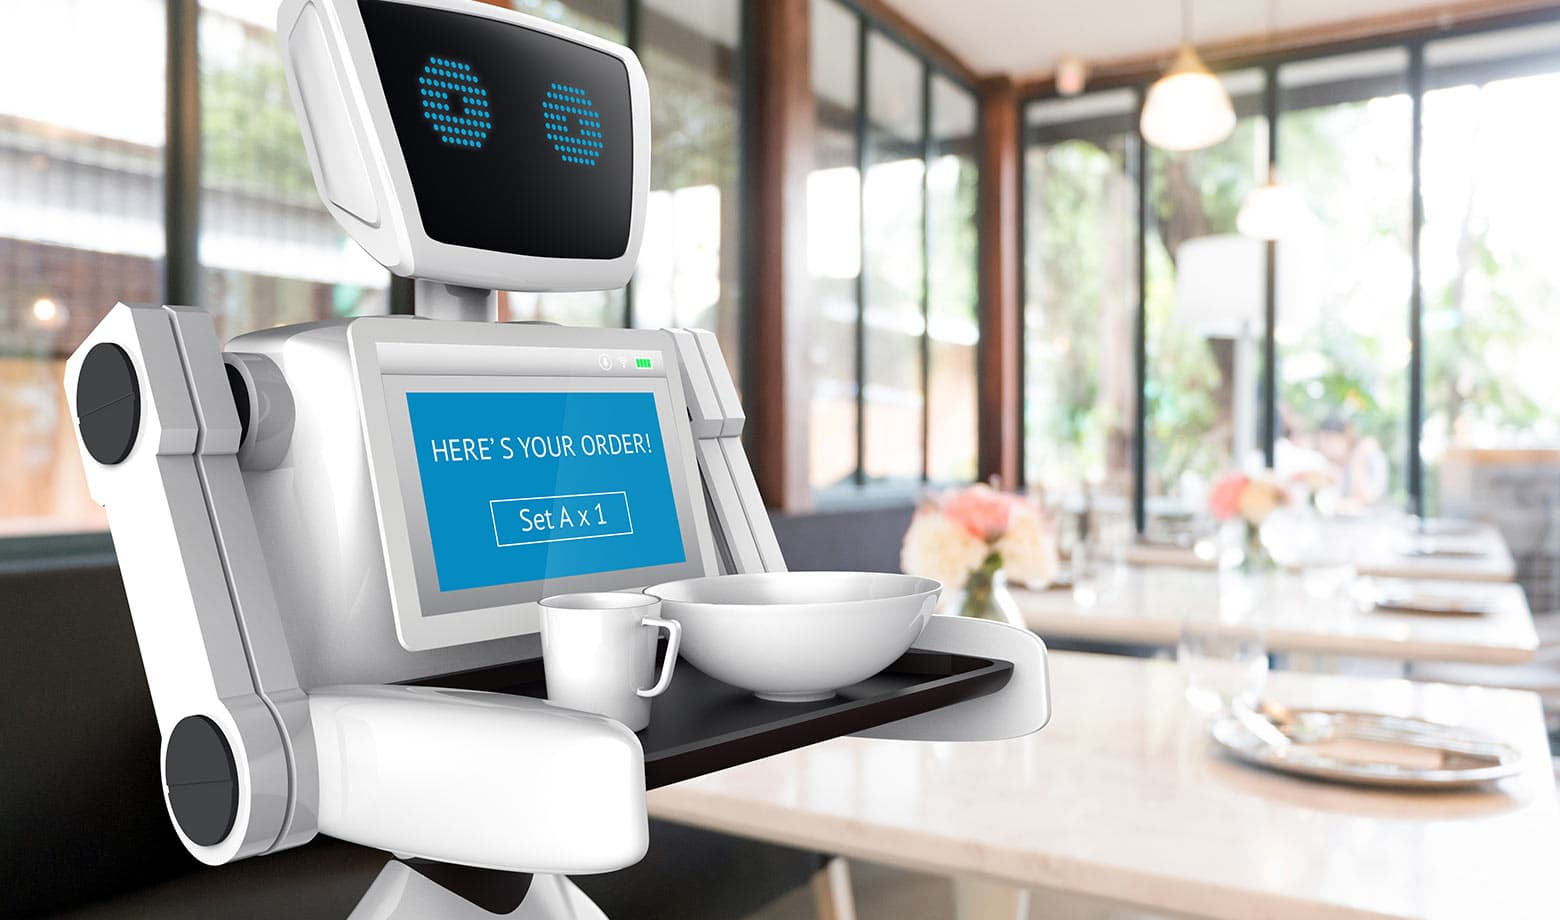 The image shows a robot delivering food